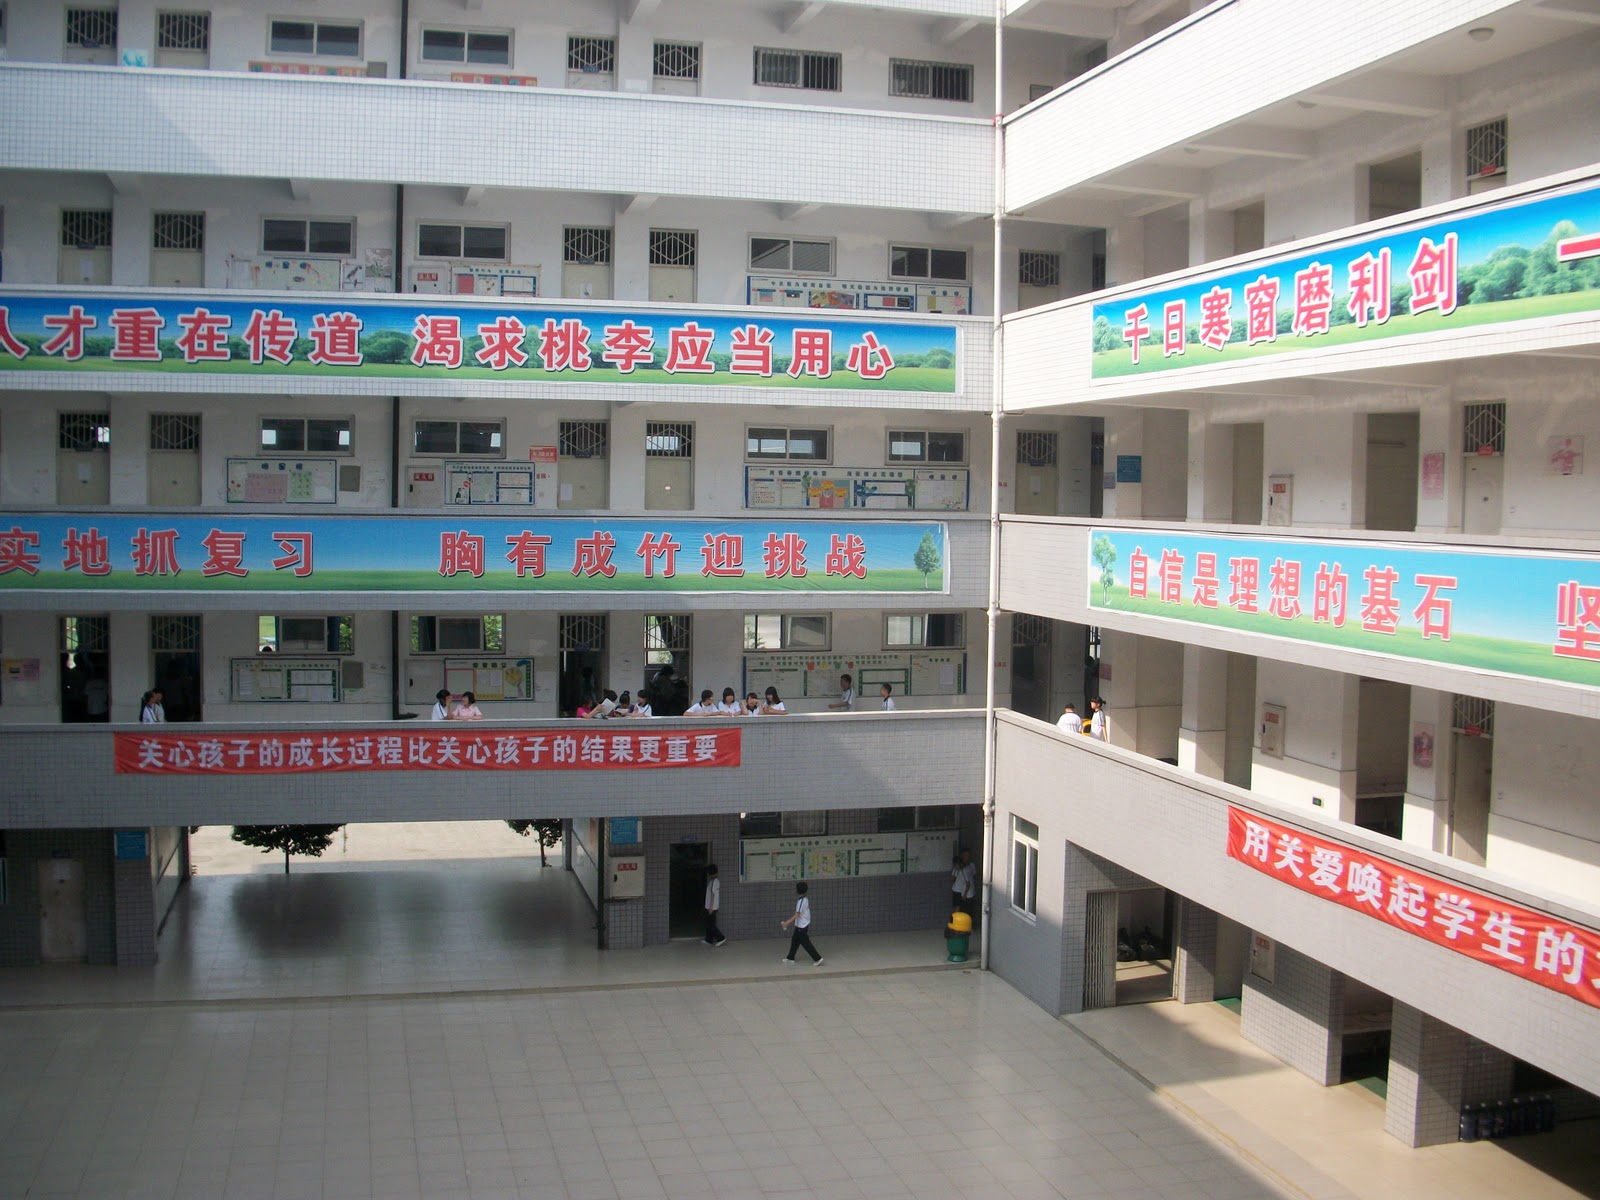 The Middle School Building